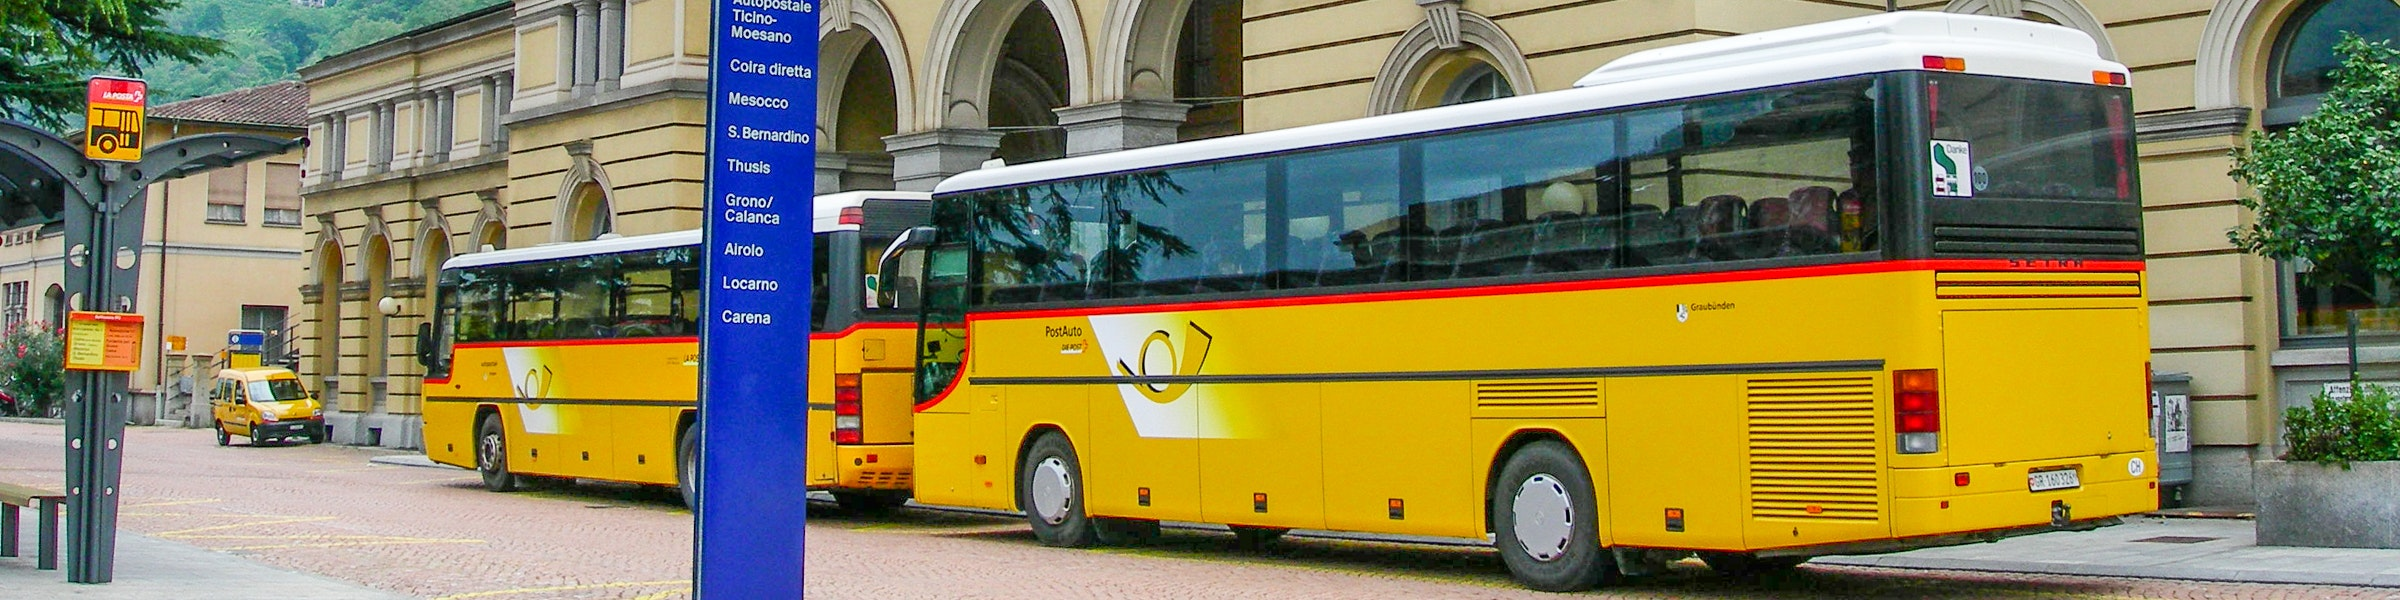 Postbussen in Bellinzona